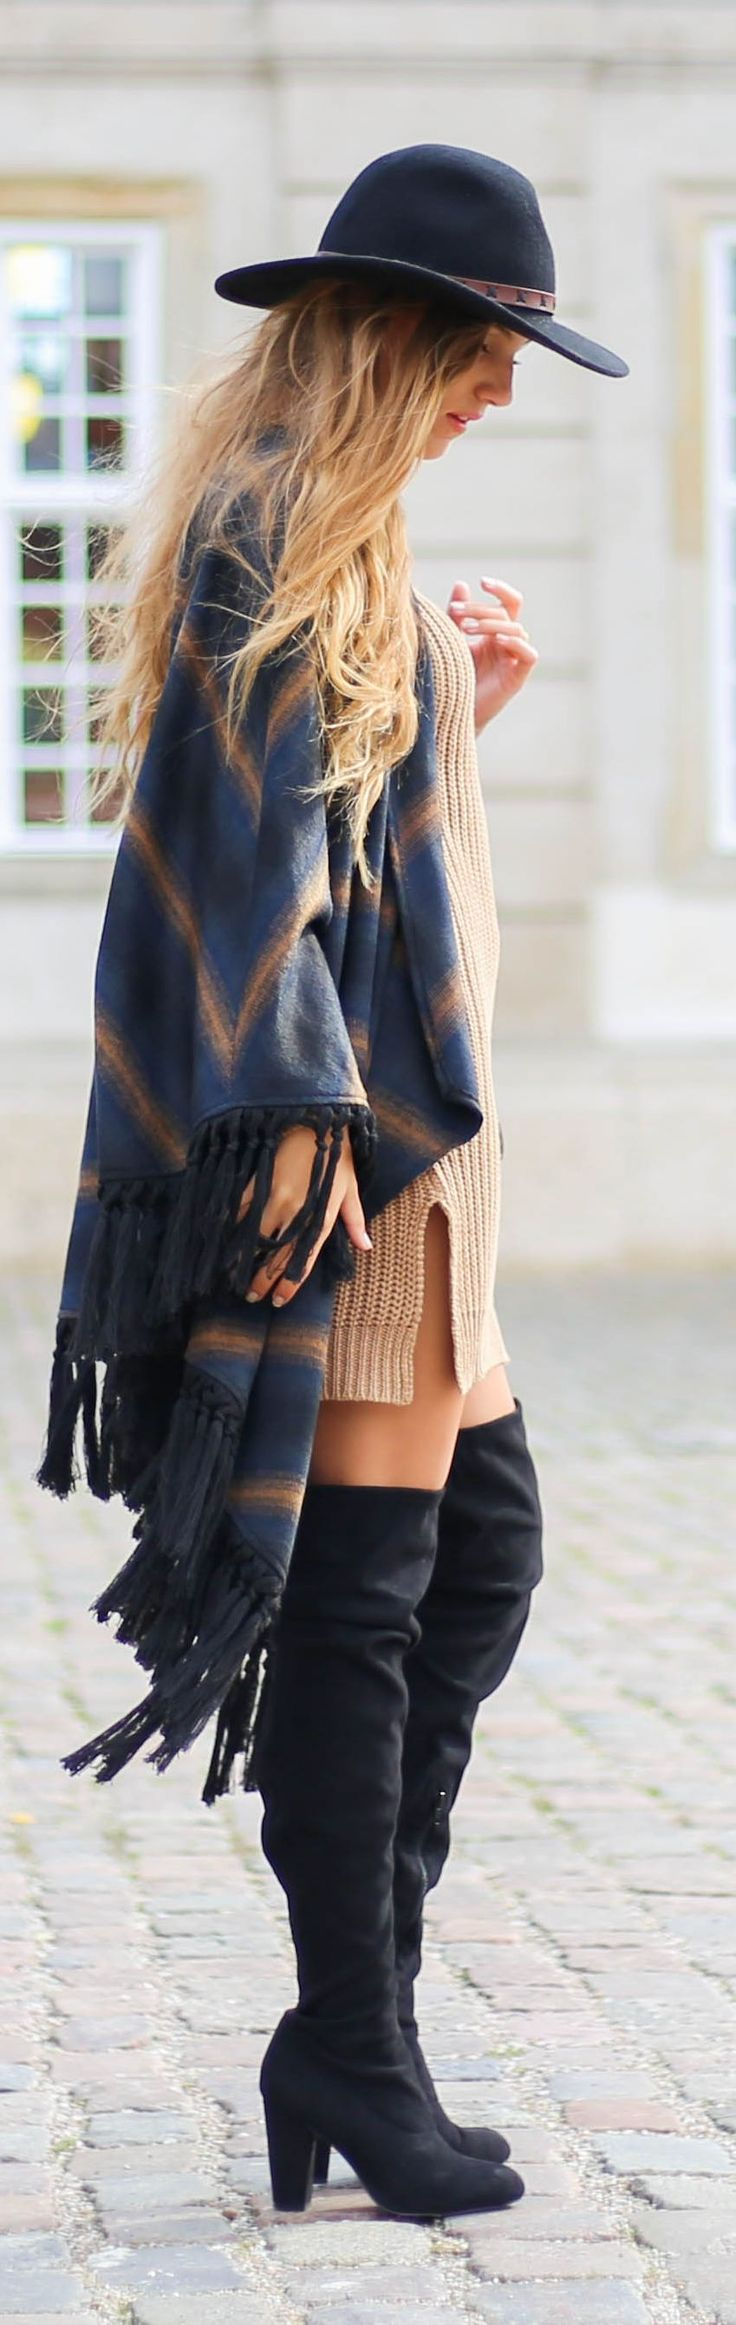 Best 25 Bohemian Winter Fashion Ideas On Pinterest Hippie Dresses Bohemian Winter Style And